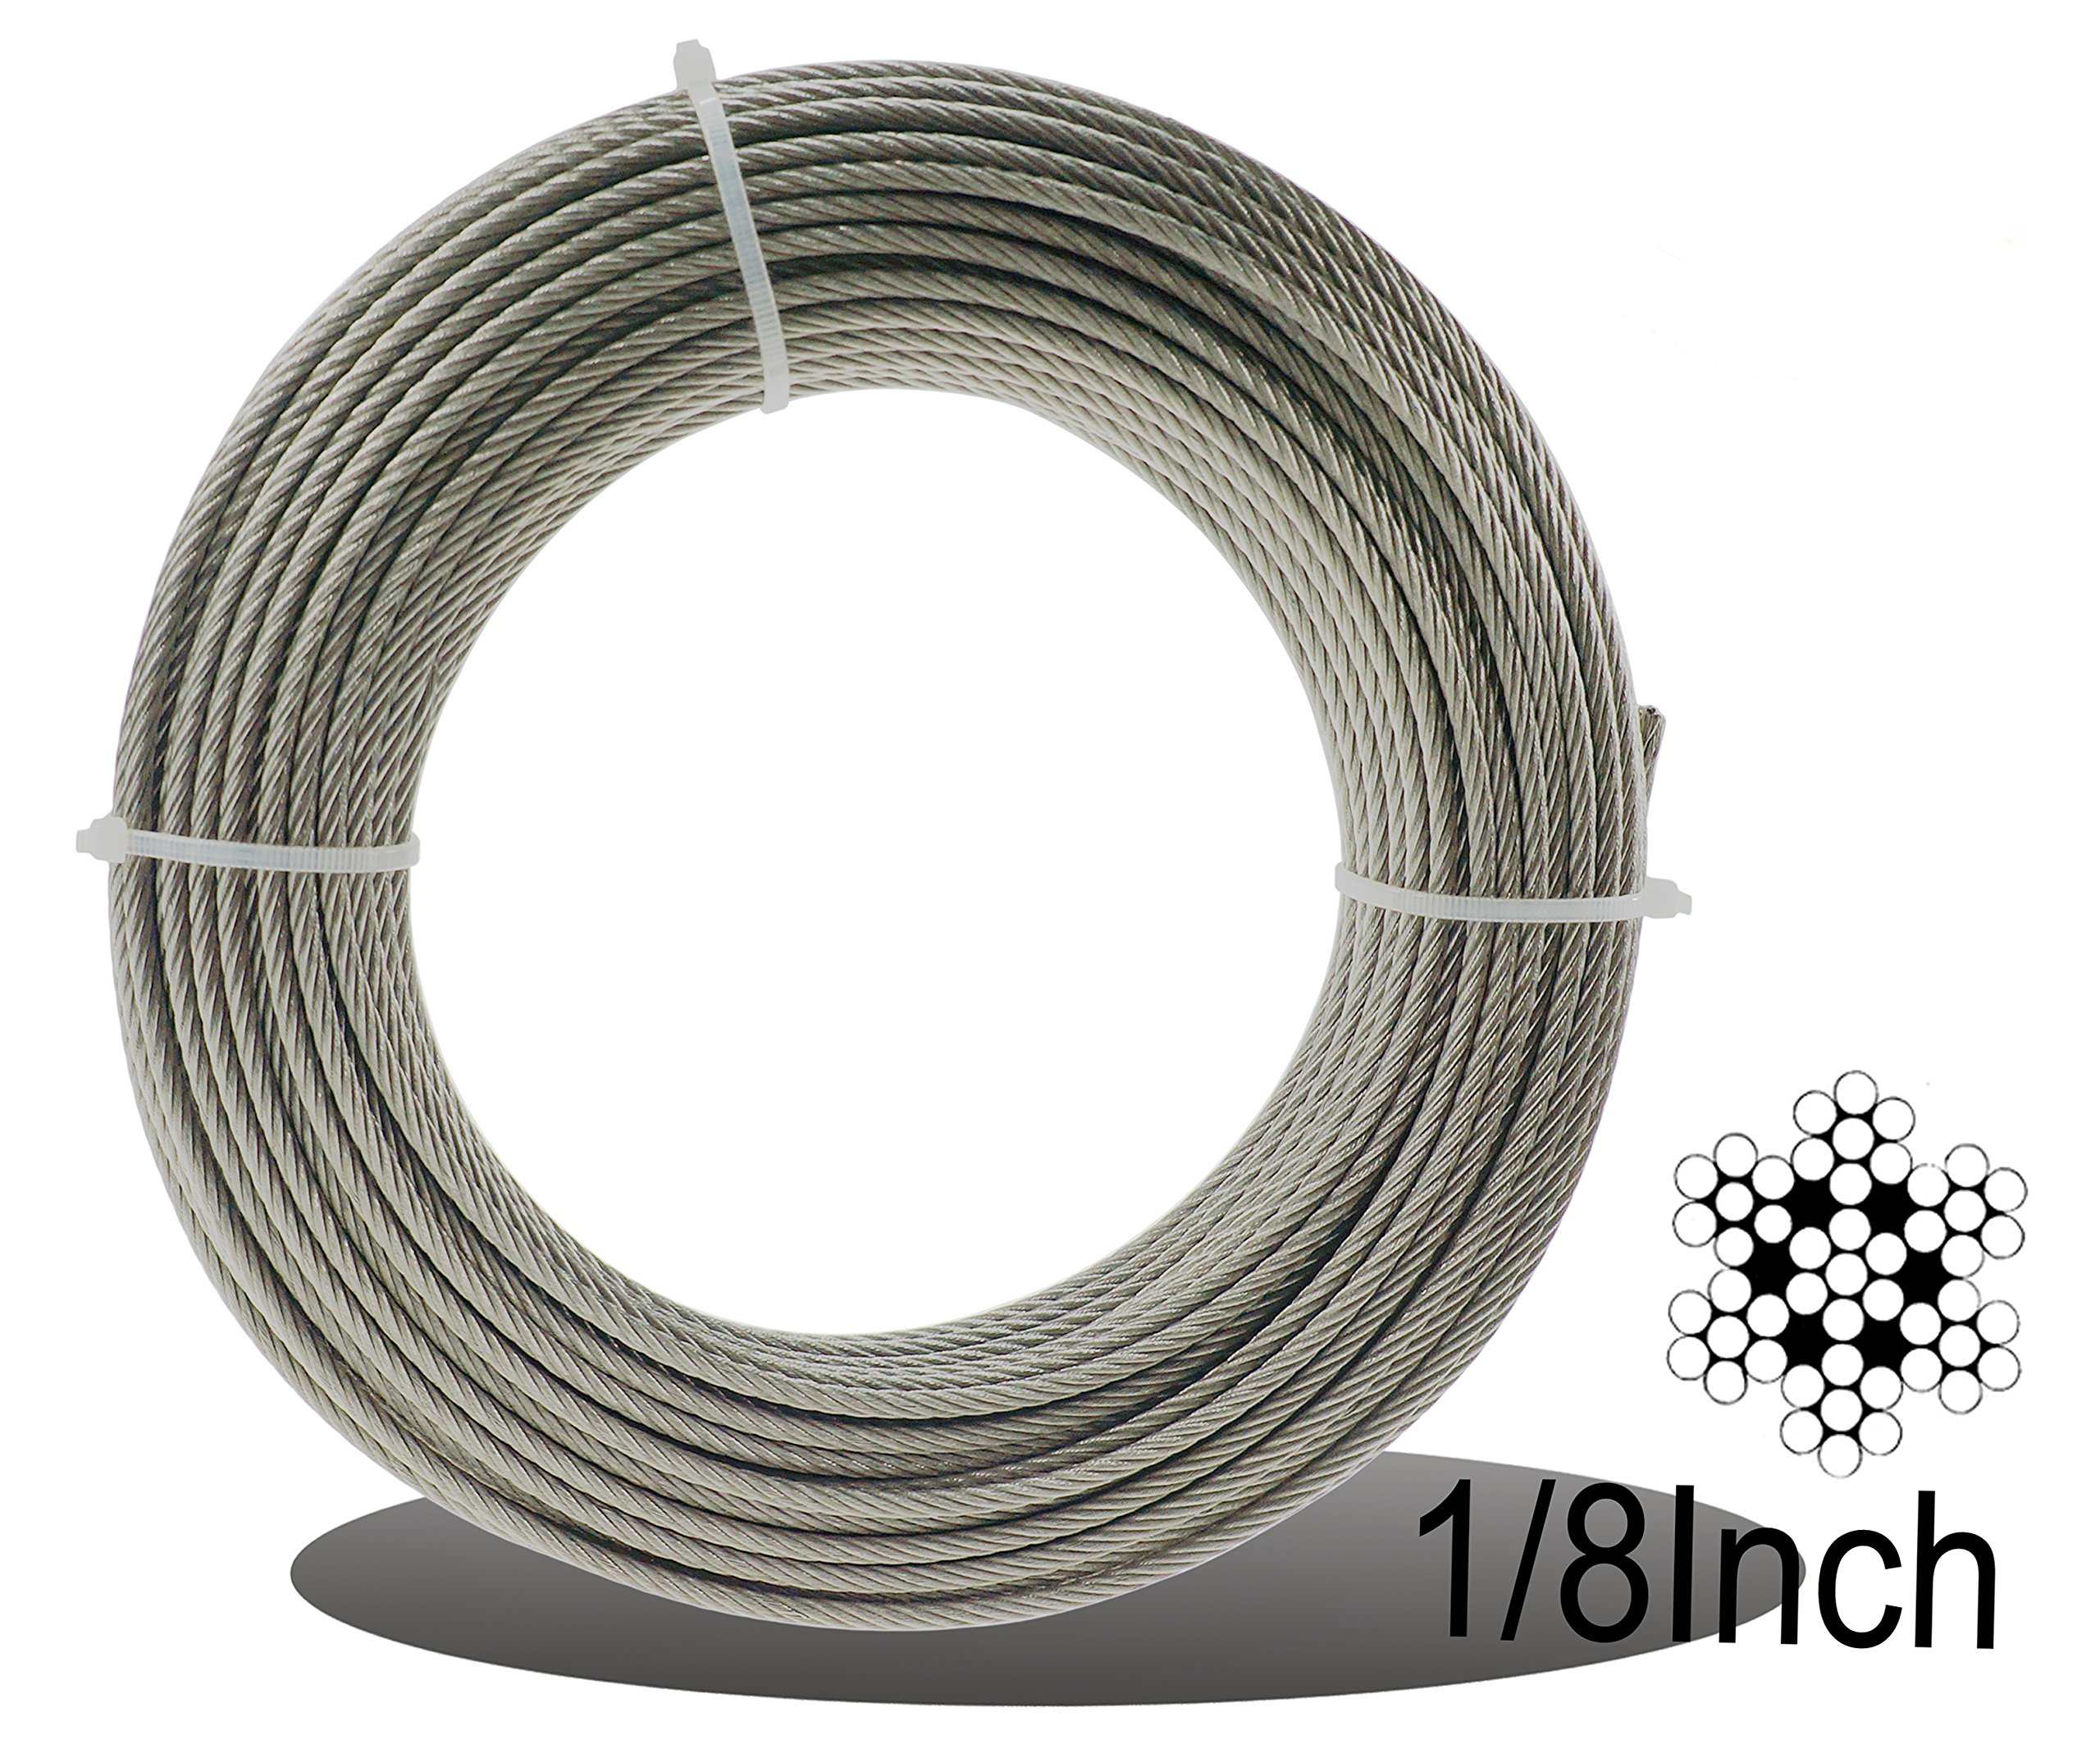 Muzata Stainless Aircraft Steel Wire Rope Cable For Railing ,Decking, DIY Balustrade, 1/8Inch,7x7,328Feet